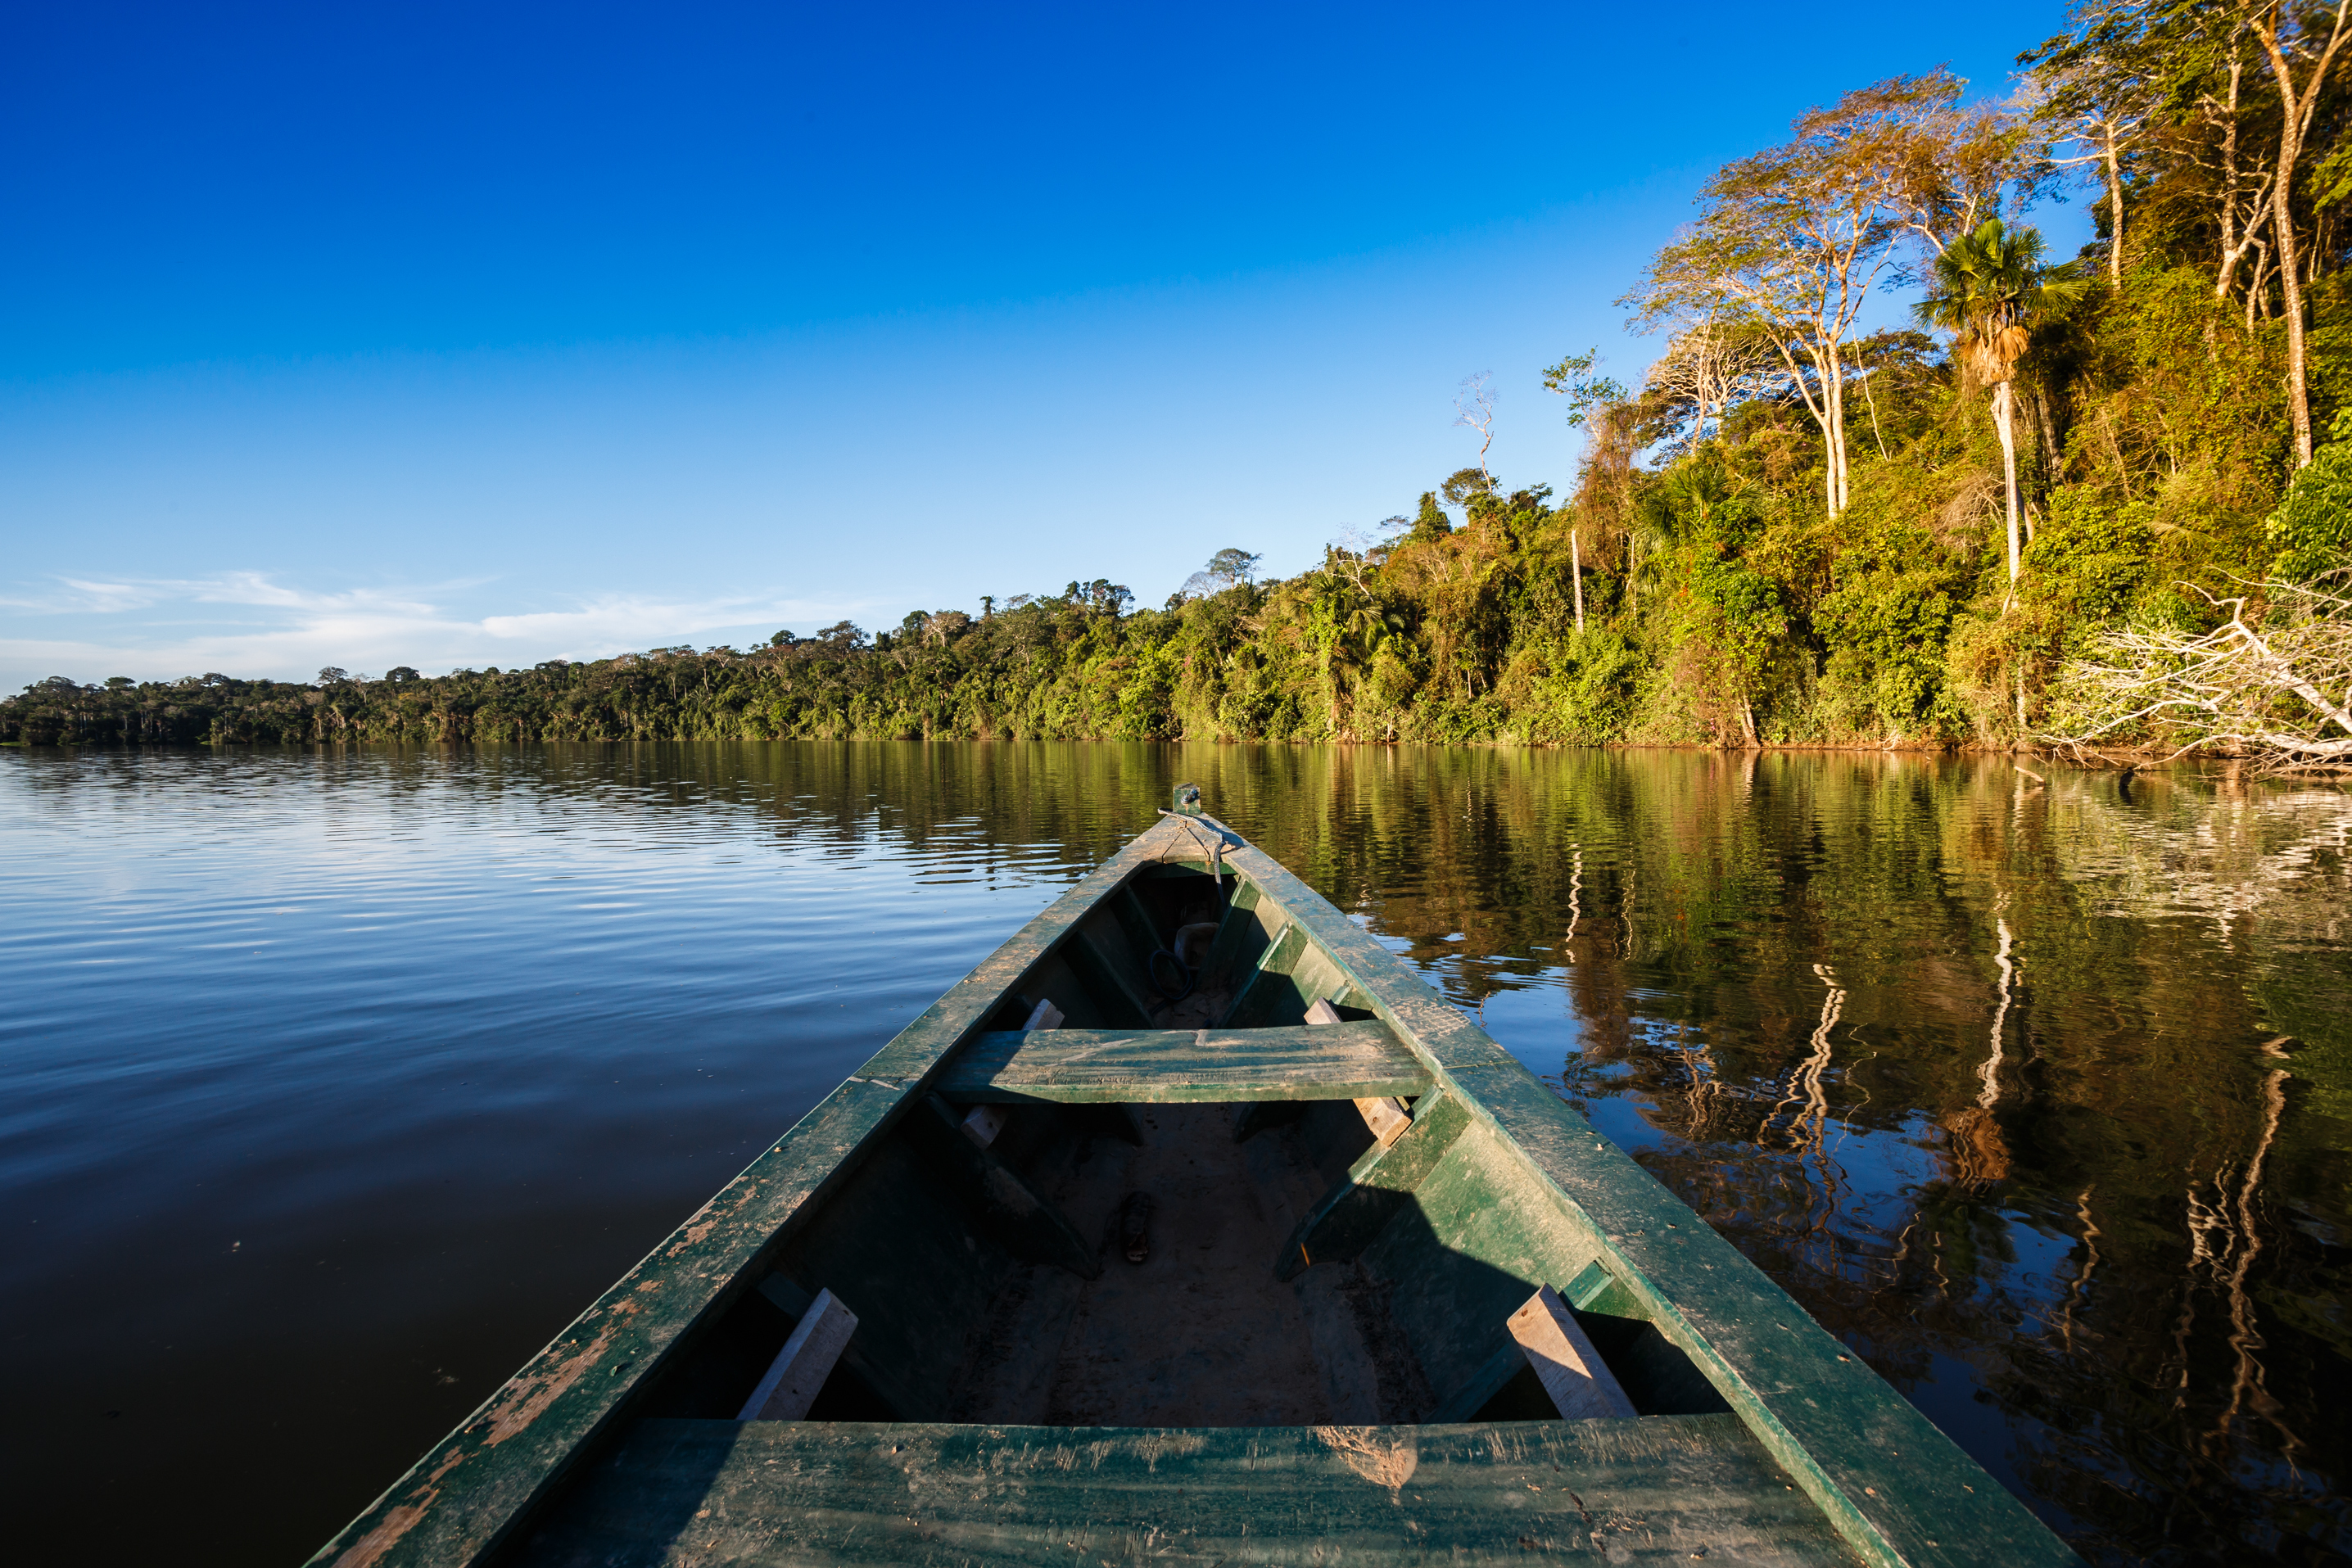 Boat floating on the Amazon river